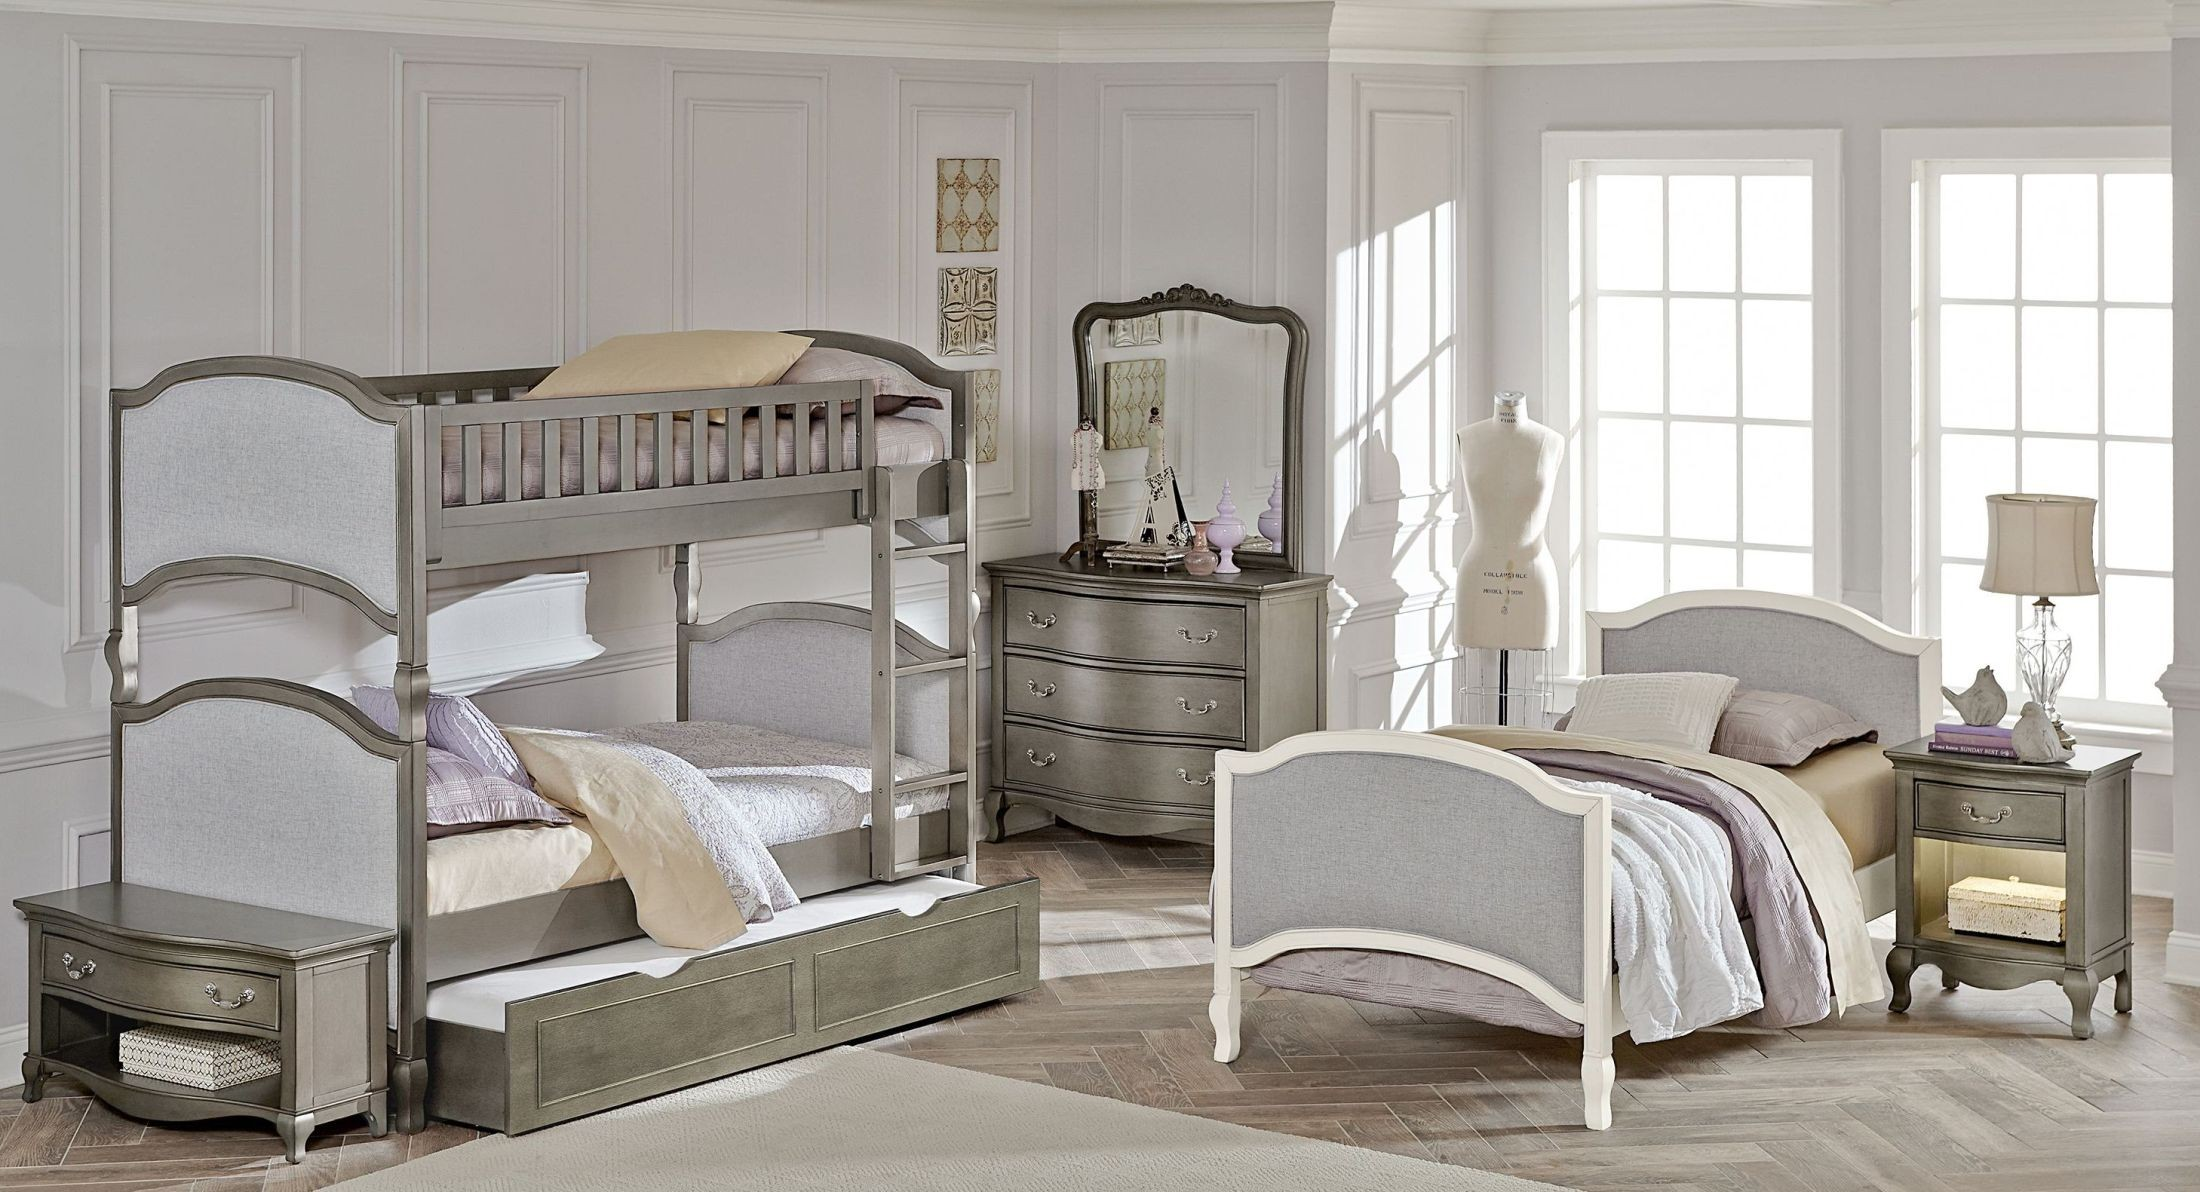 Kensington Antique Silver Victoria Youth Bunk Bedroom Set With Trundle From Ne Kids Coleman